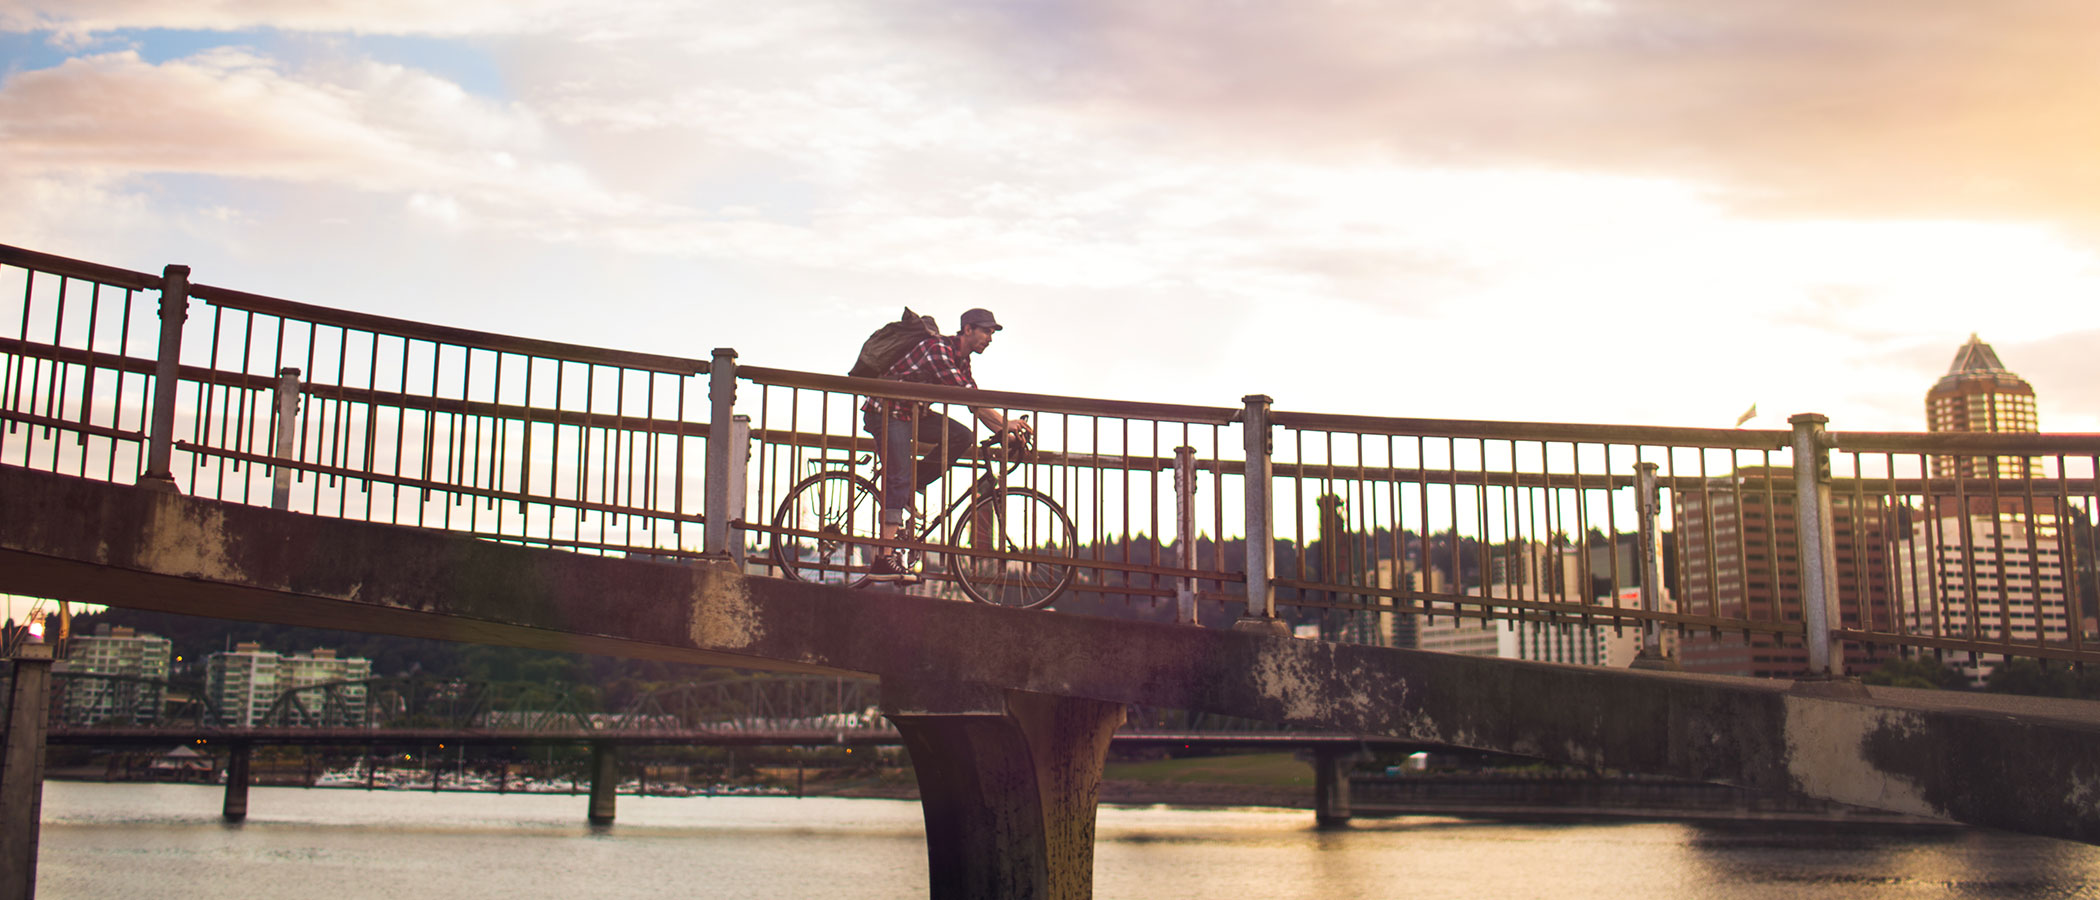 Bicycle rider in Portland, Oregon